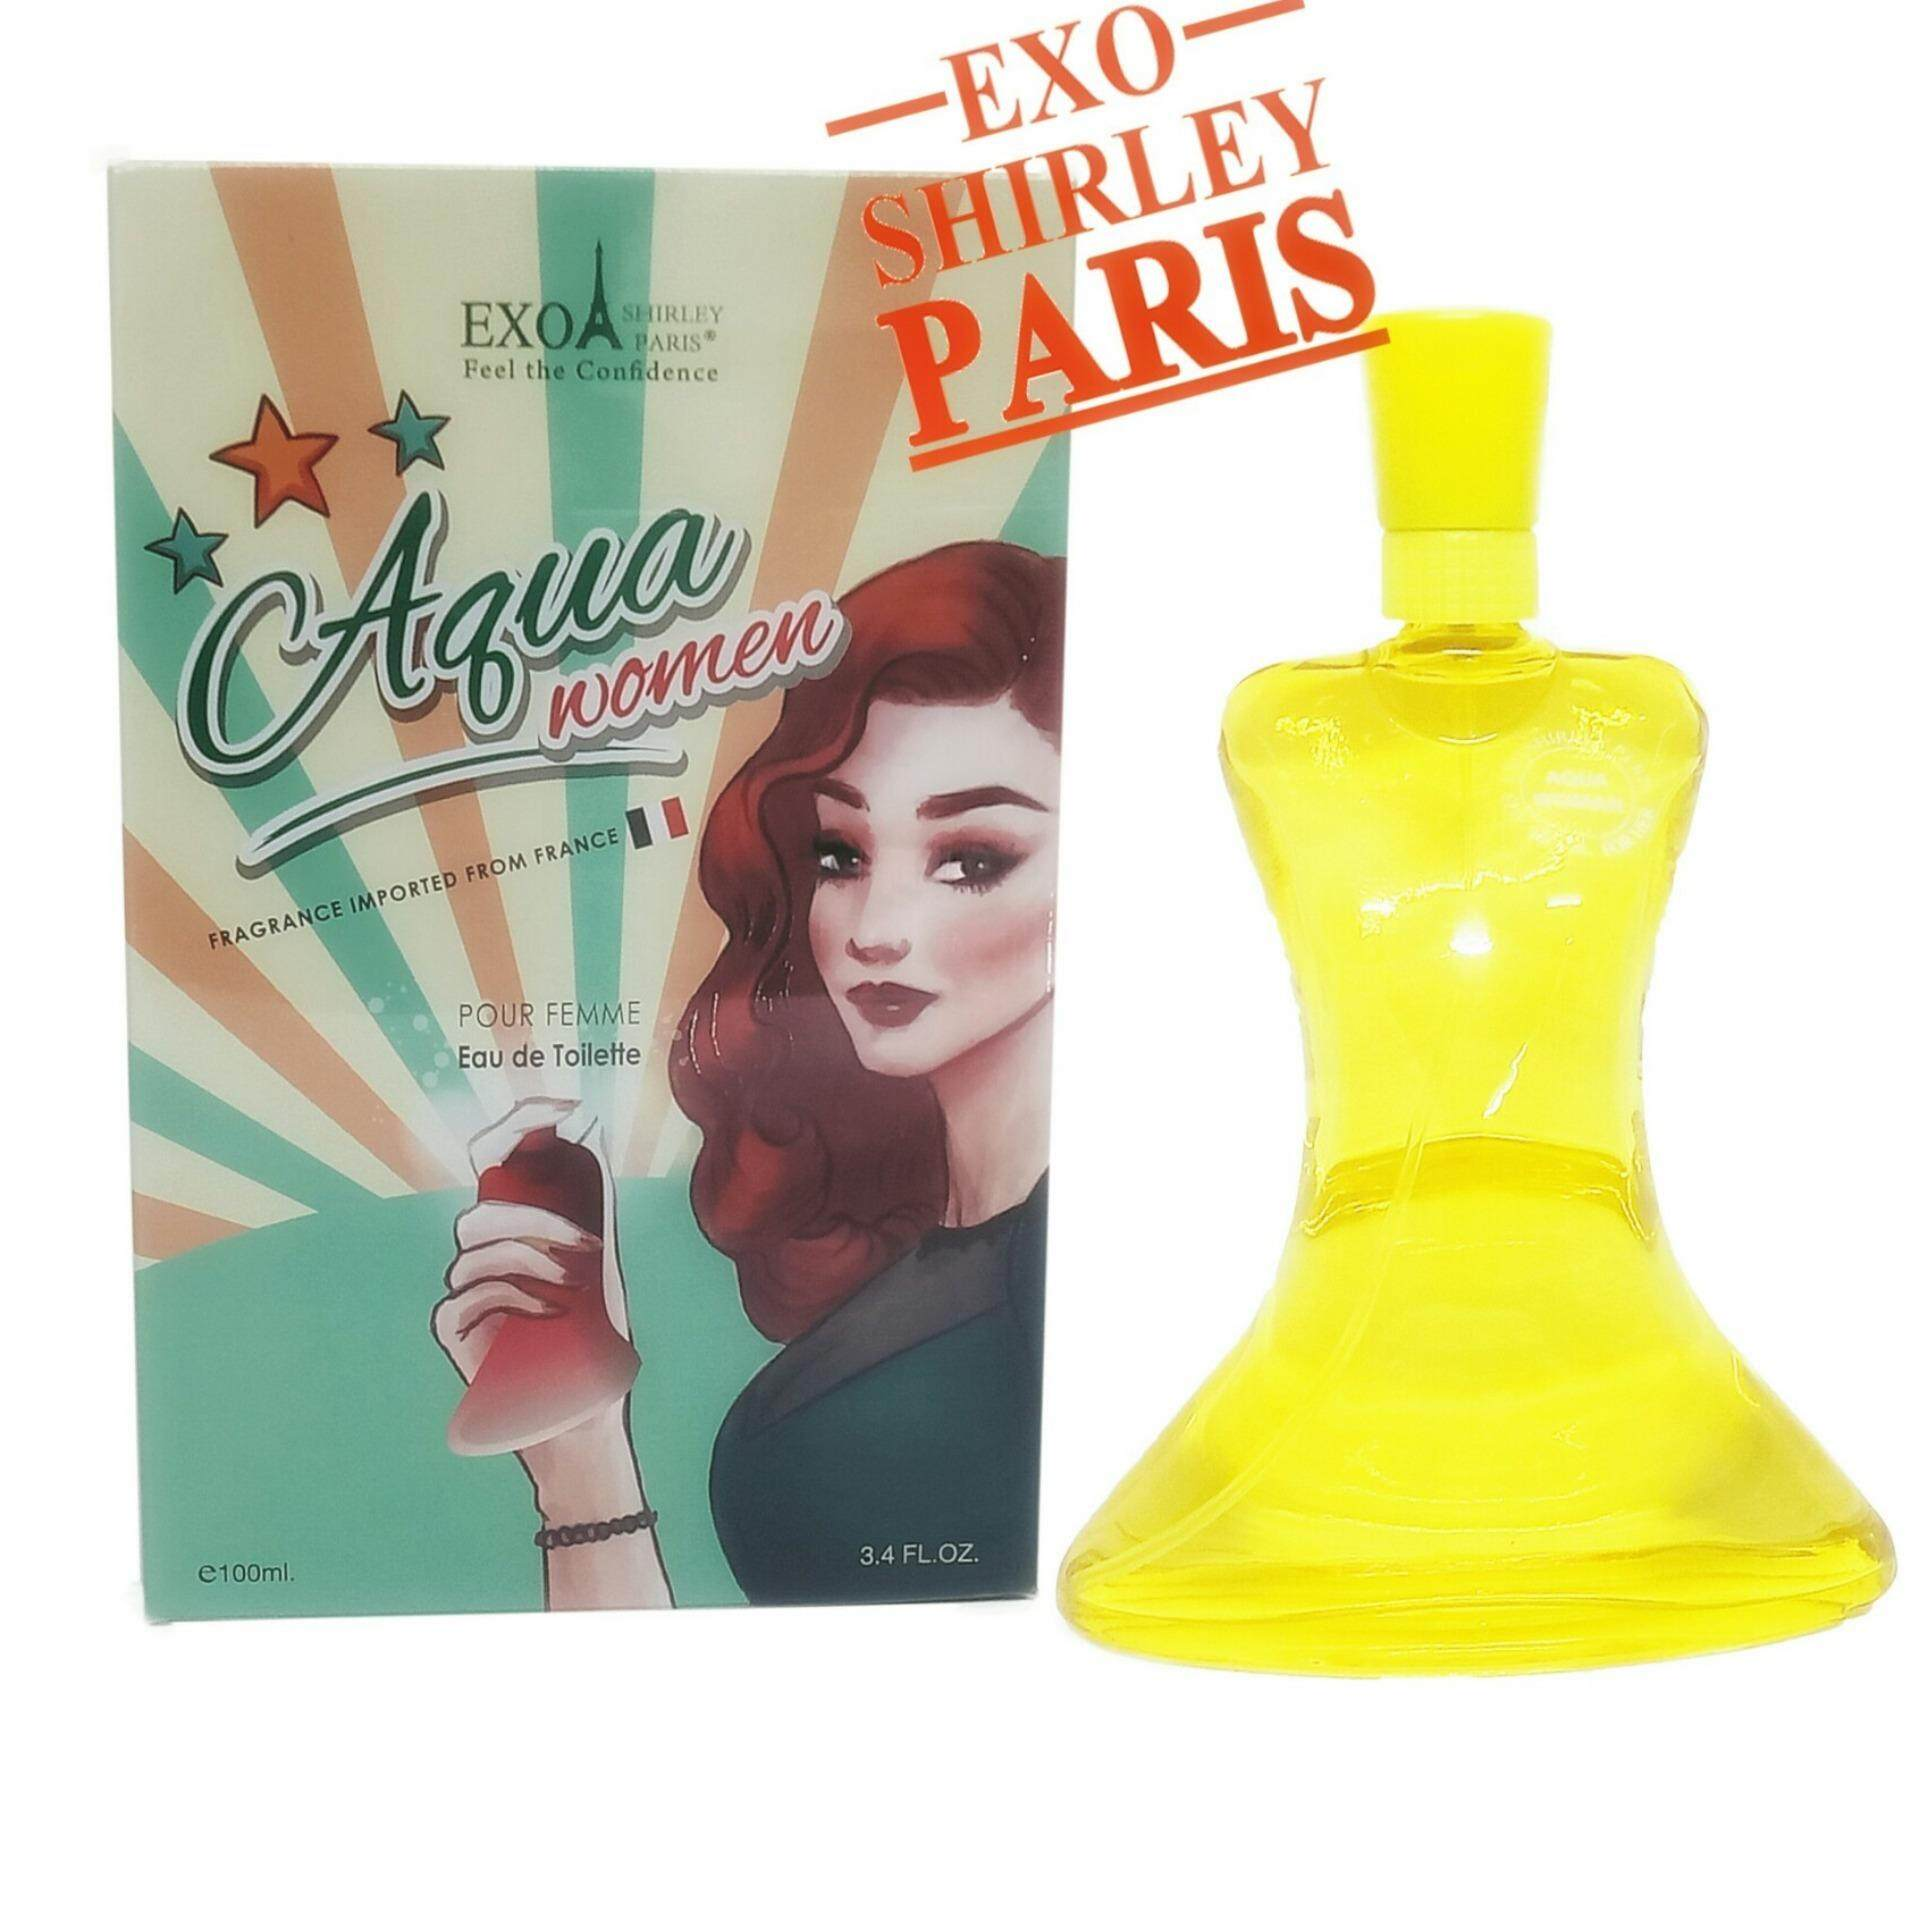 ซื้อ Marie Pierre Paris Exo Shirley Paris Aqua Woman ออนไลน์